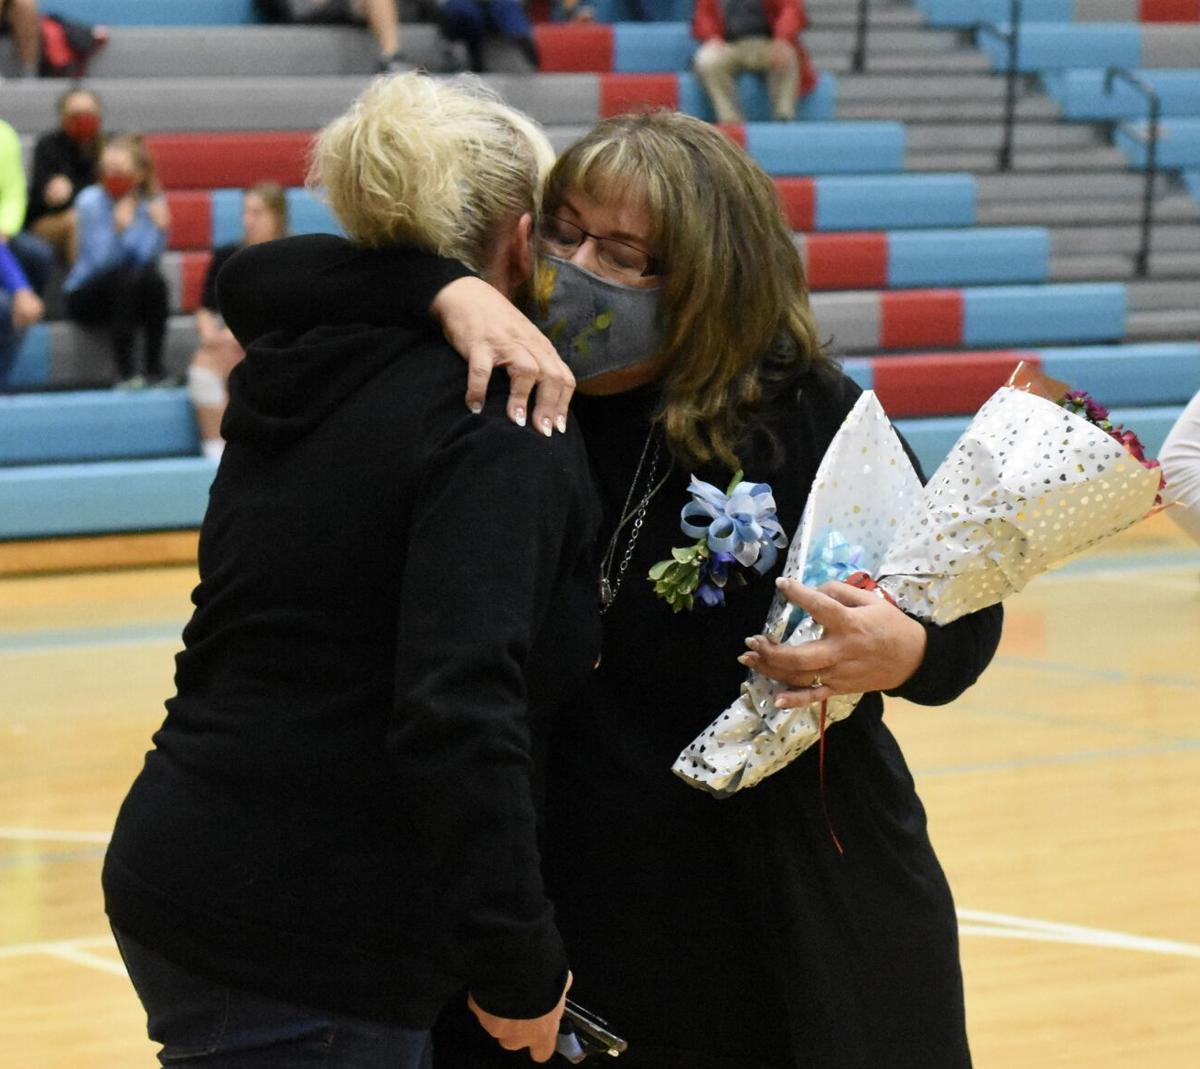 Sherry Hooks and Wendy Ratliff share a hug